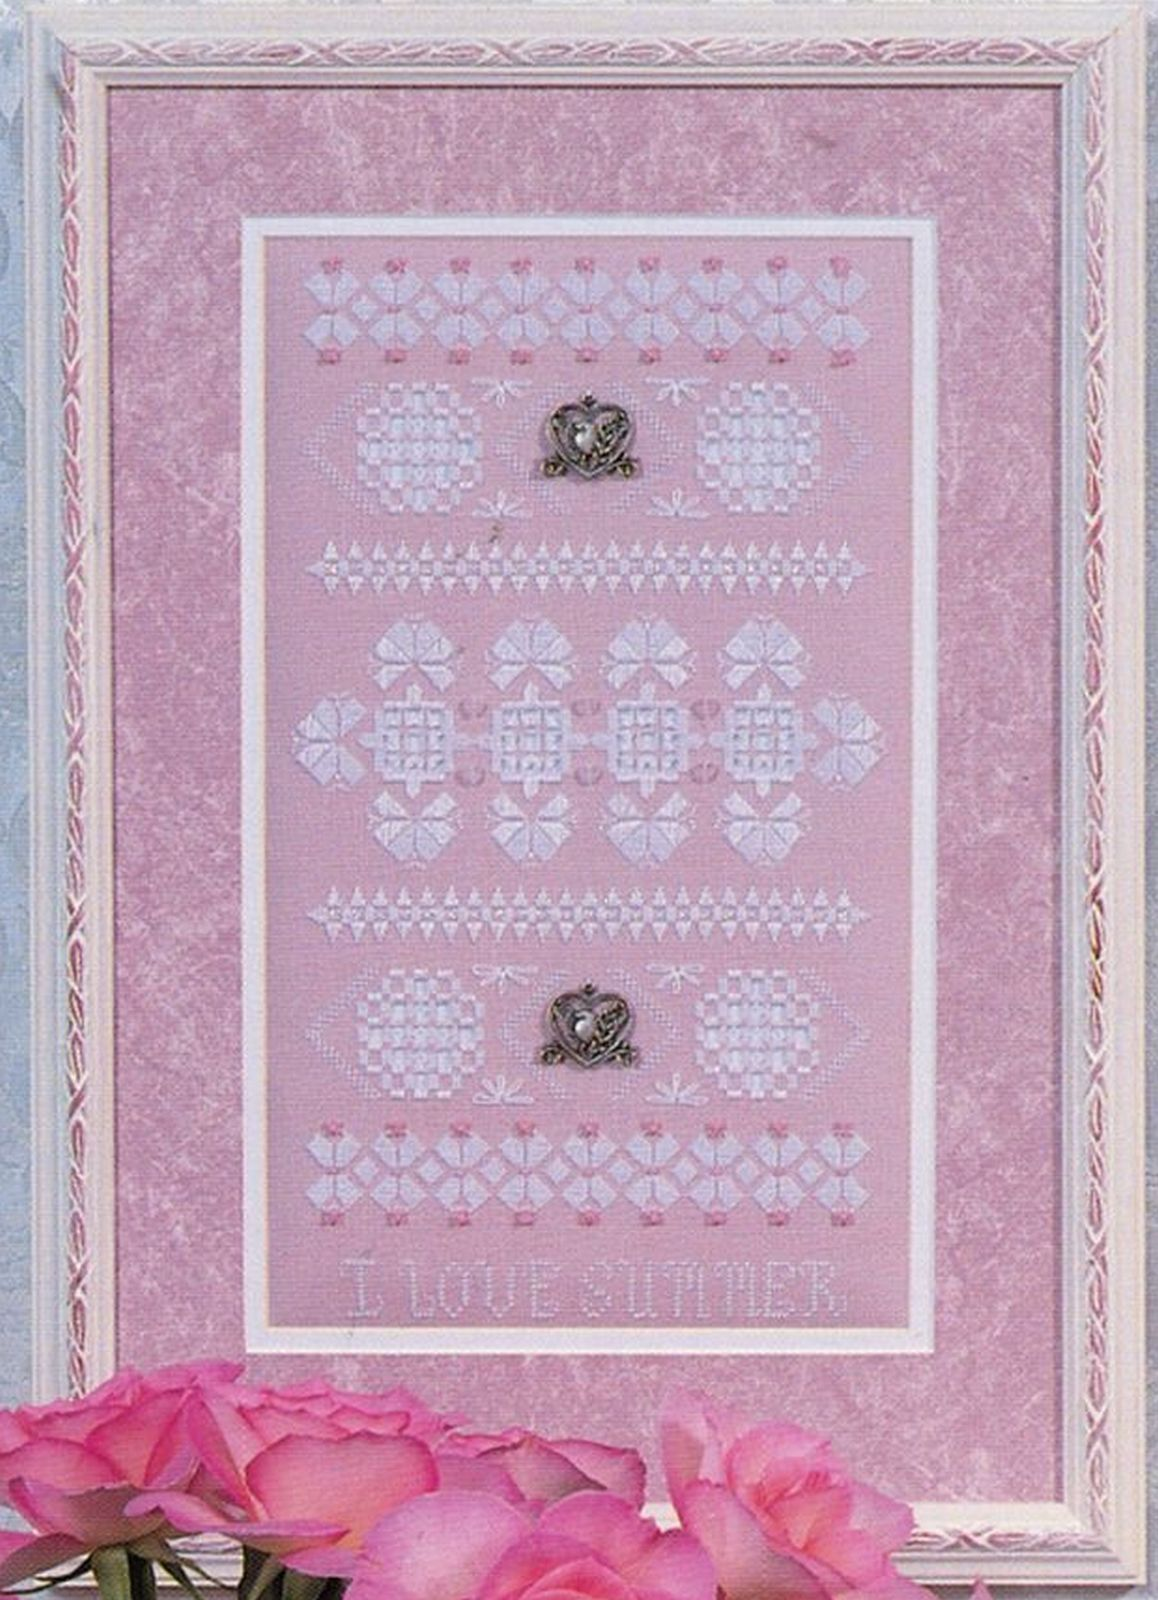 I Love Summer Hardanger Embroidery Seasonal Sampler Rosalyn Watnemo Book image 2